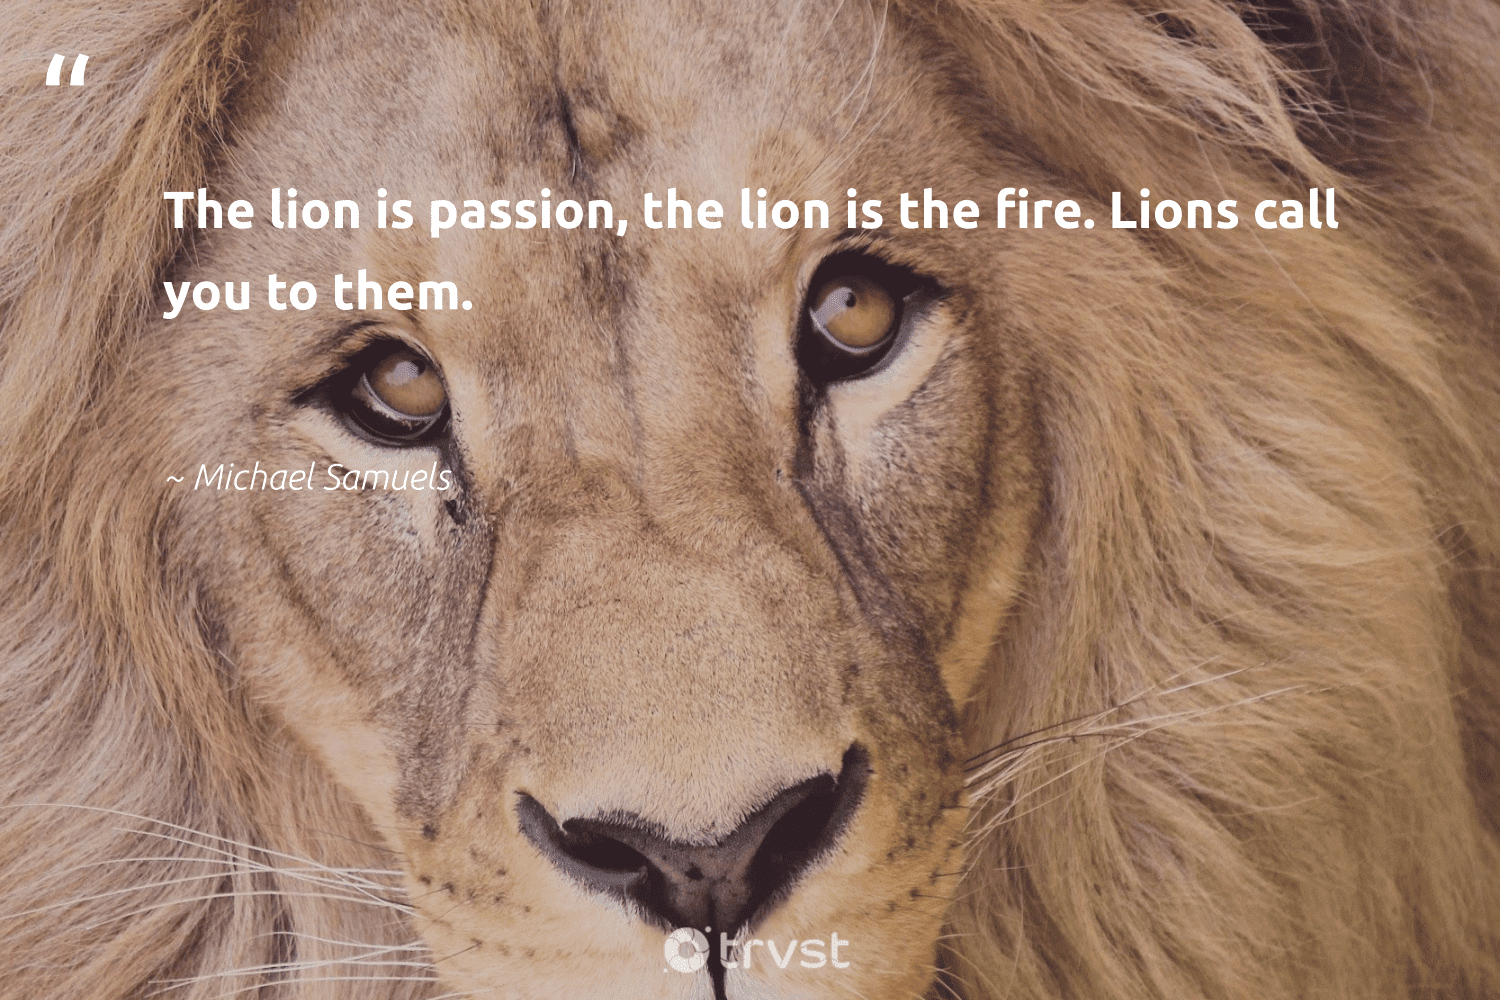 """""""The lion is passion, the lion is the fire. Lions call you to them.""""  - Michael Samuels #trvst #quotes #passion #lion #lions #sustainability #takeaction #wildlife #planetearthfirst #protectnature #gogreen #bigcats"""